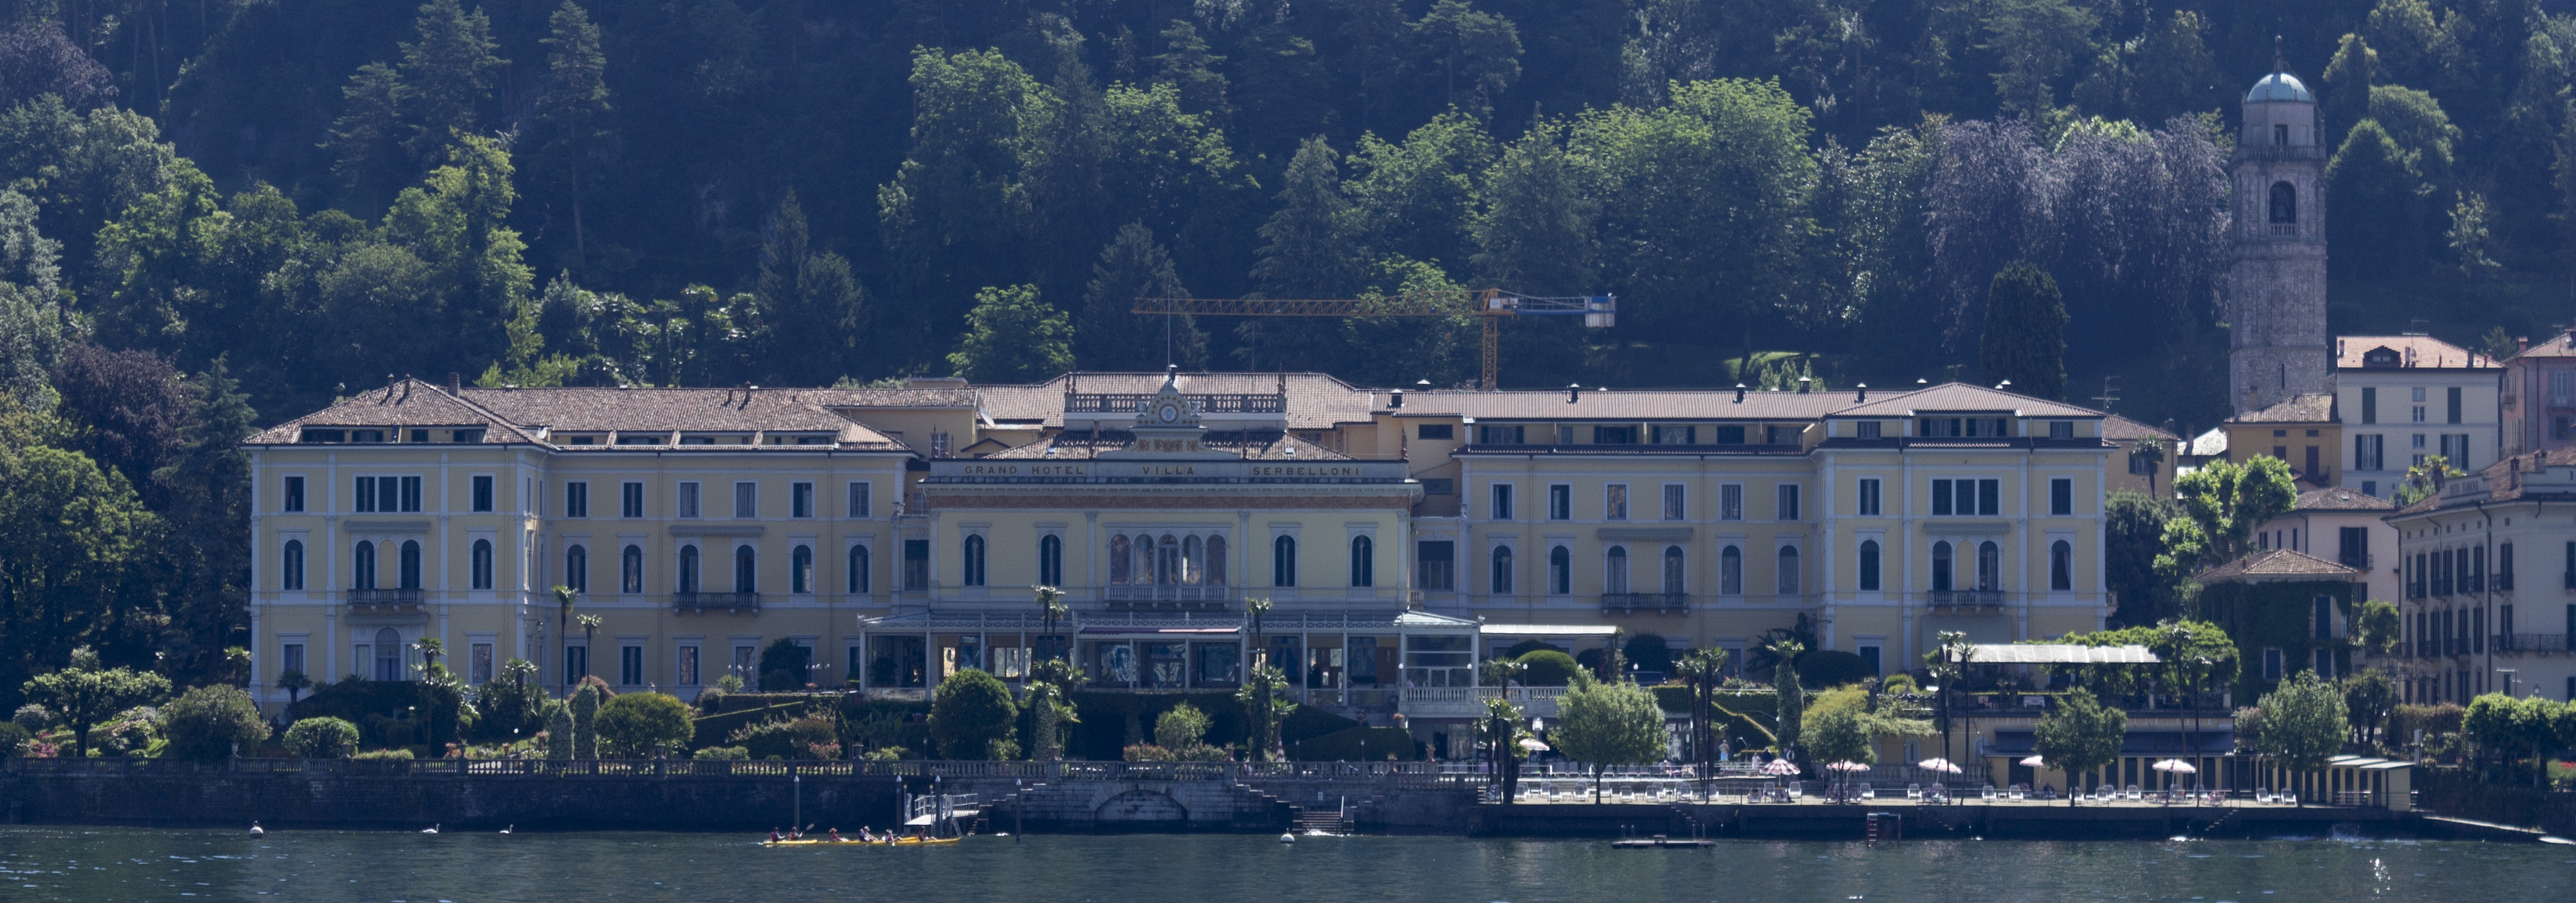 File:Bellagio - Grand Hotel Villa Serbelloni.jpg - Wikimedia Commons